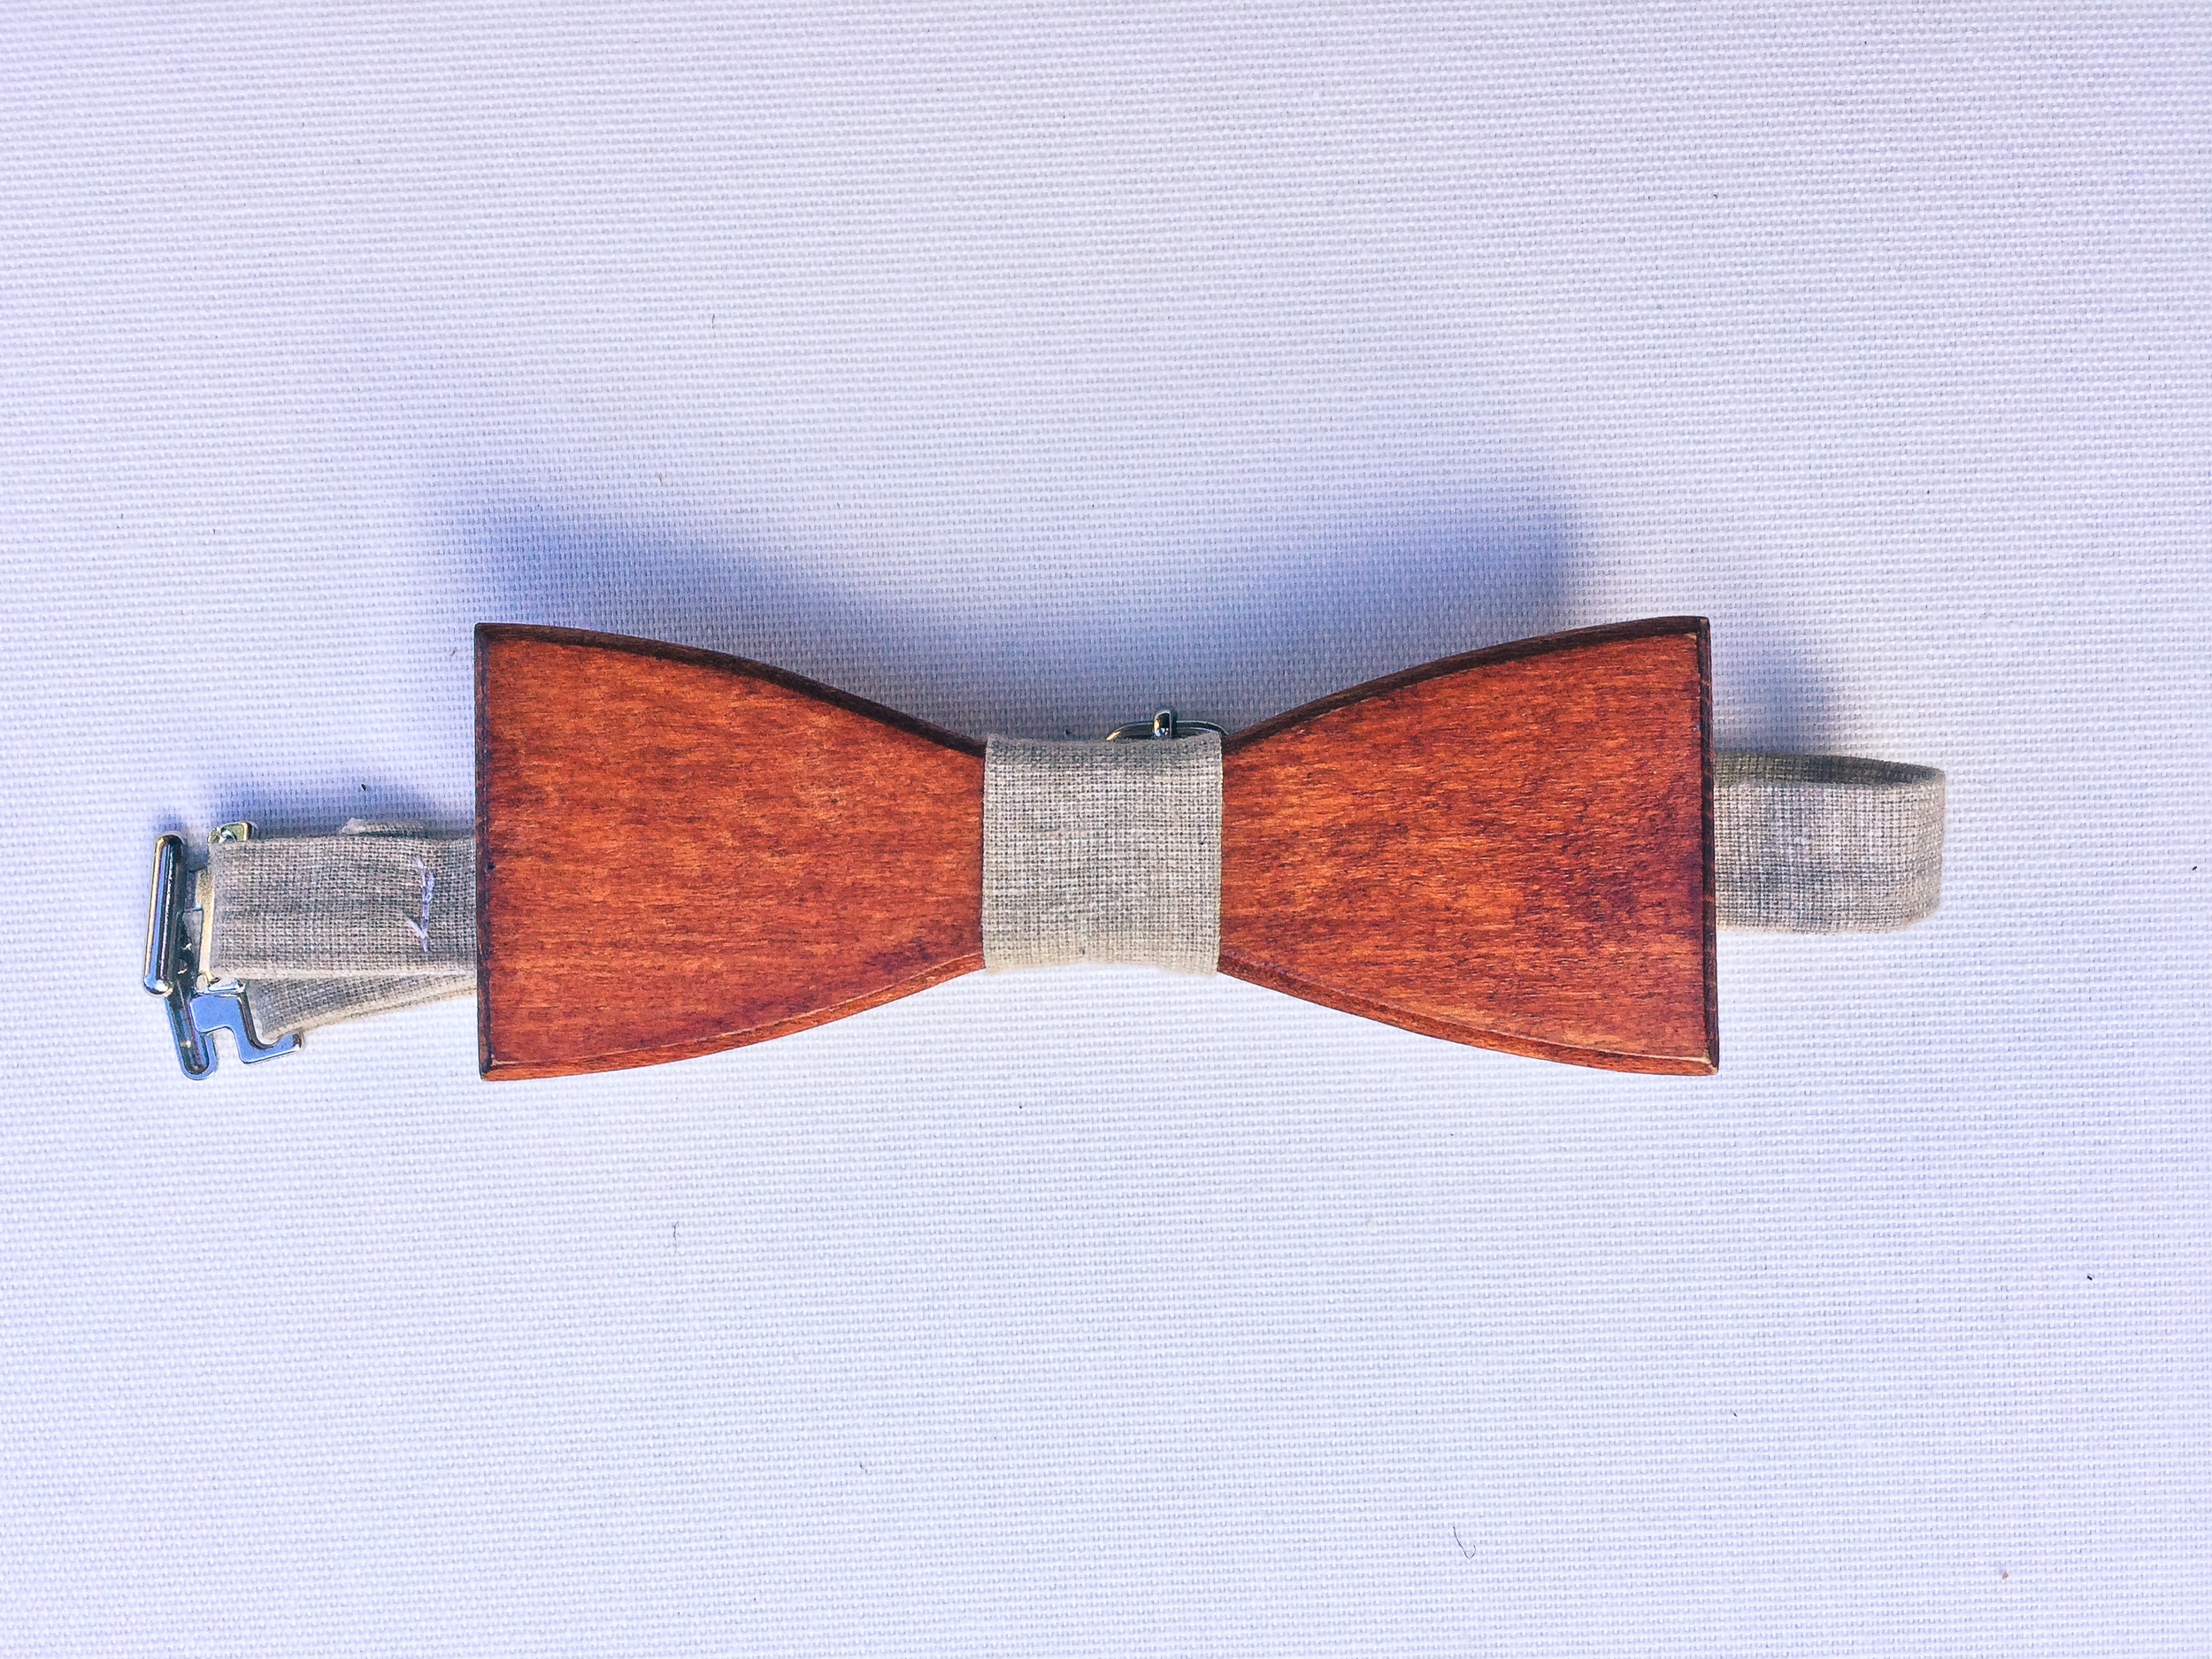 James' emergency bow tie. We are unsure exactly where this one came from, similar can be found on etsy.com